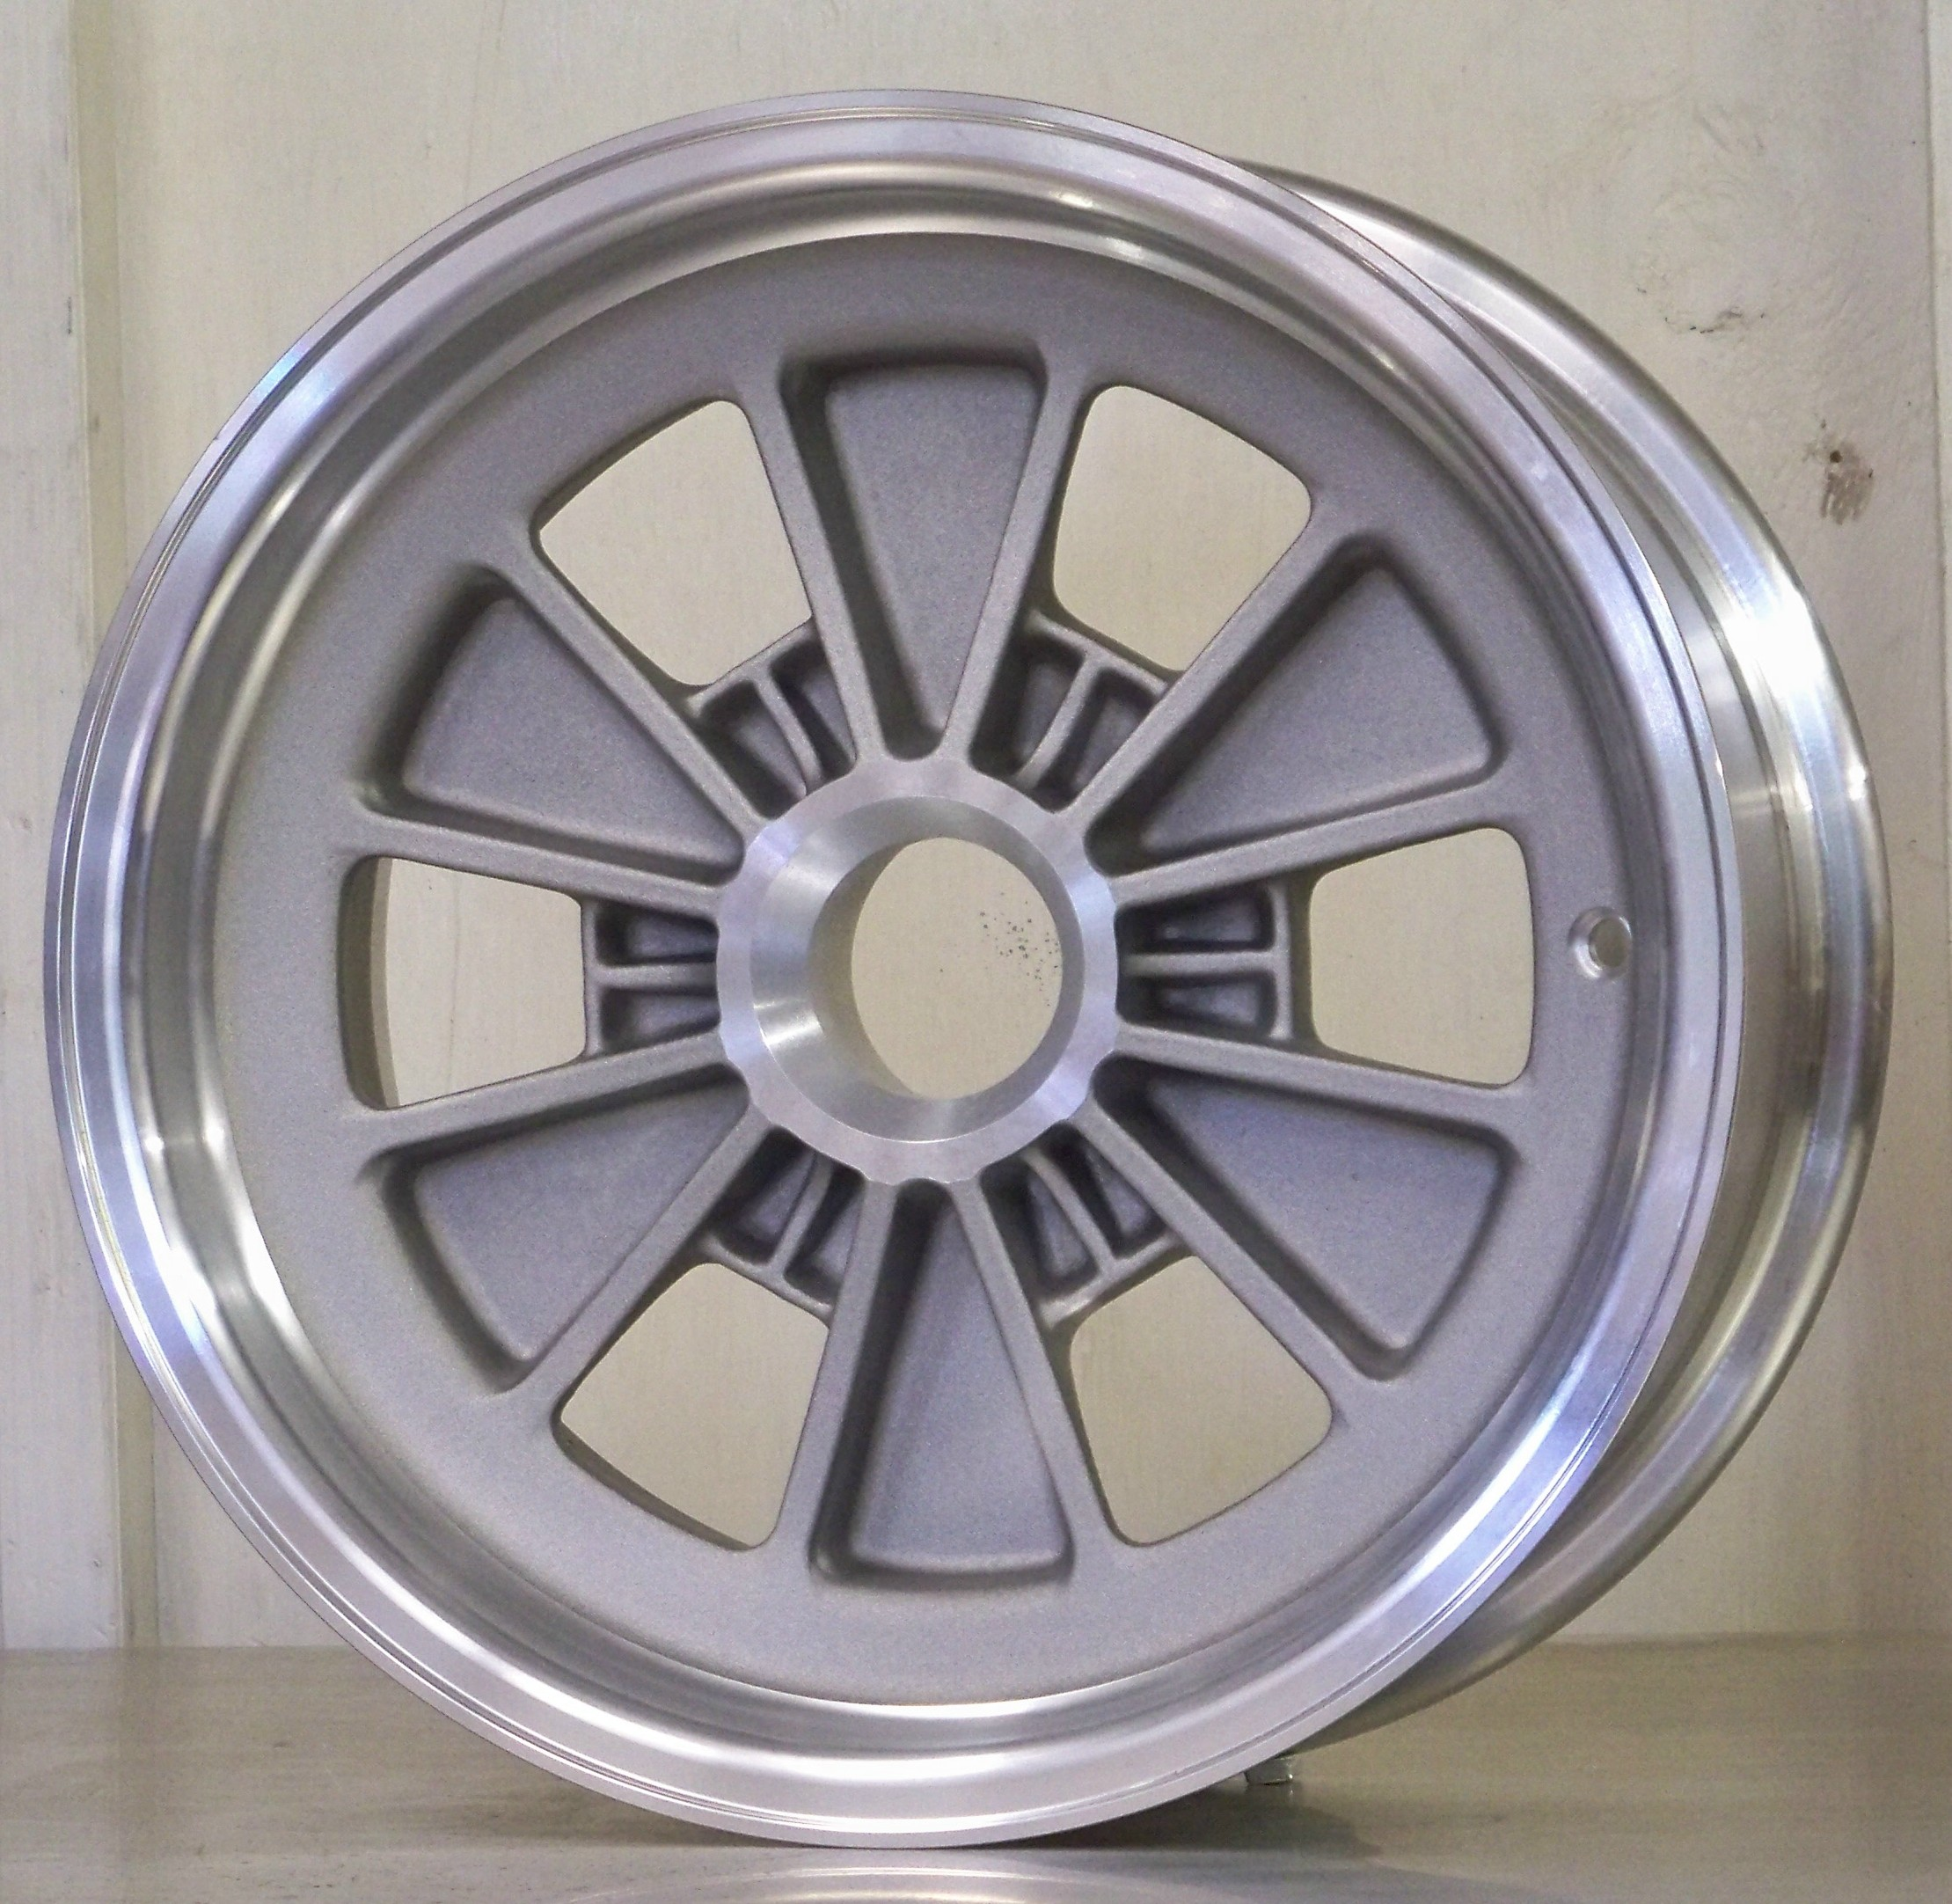 FIA 15 x 7.5 6 pin cast finish